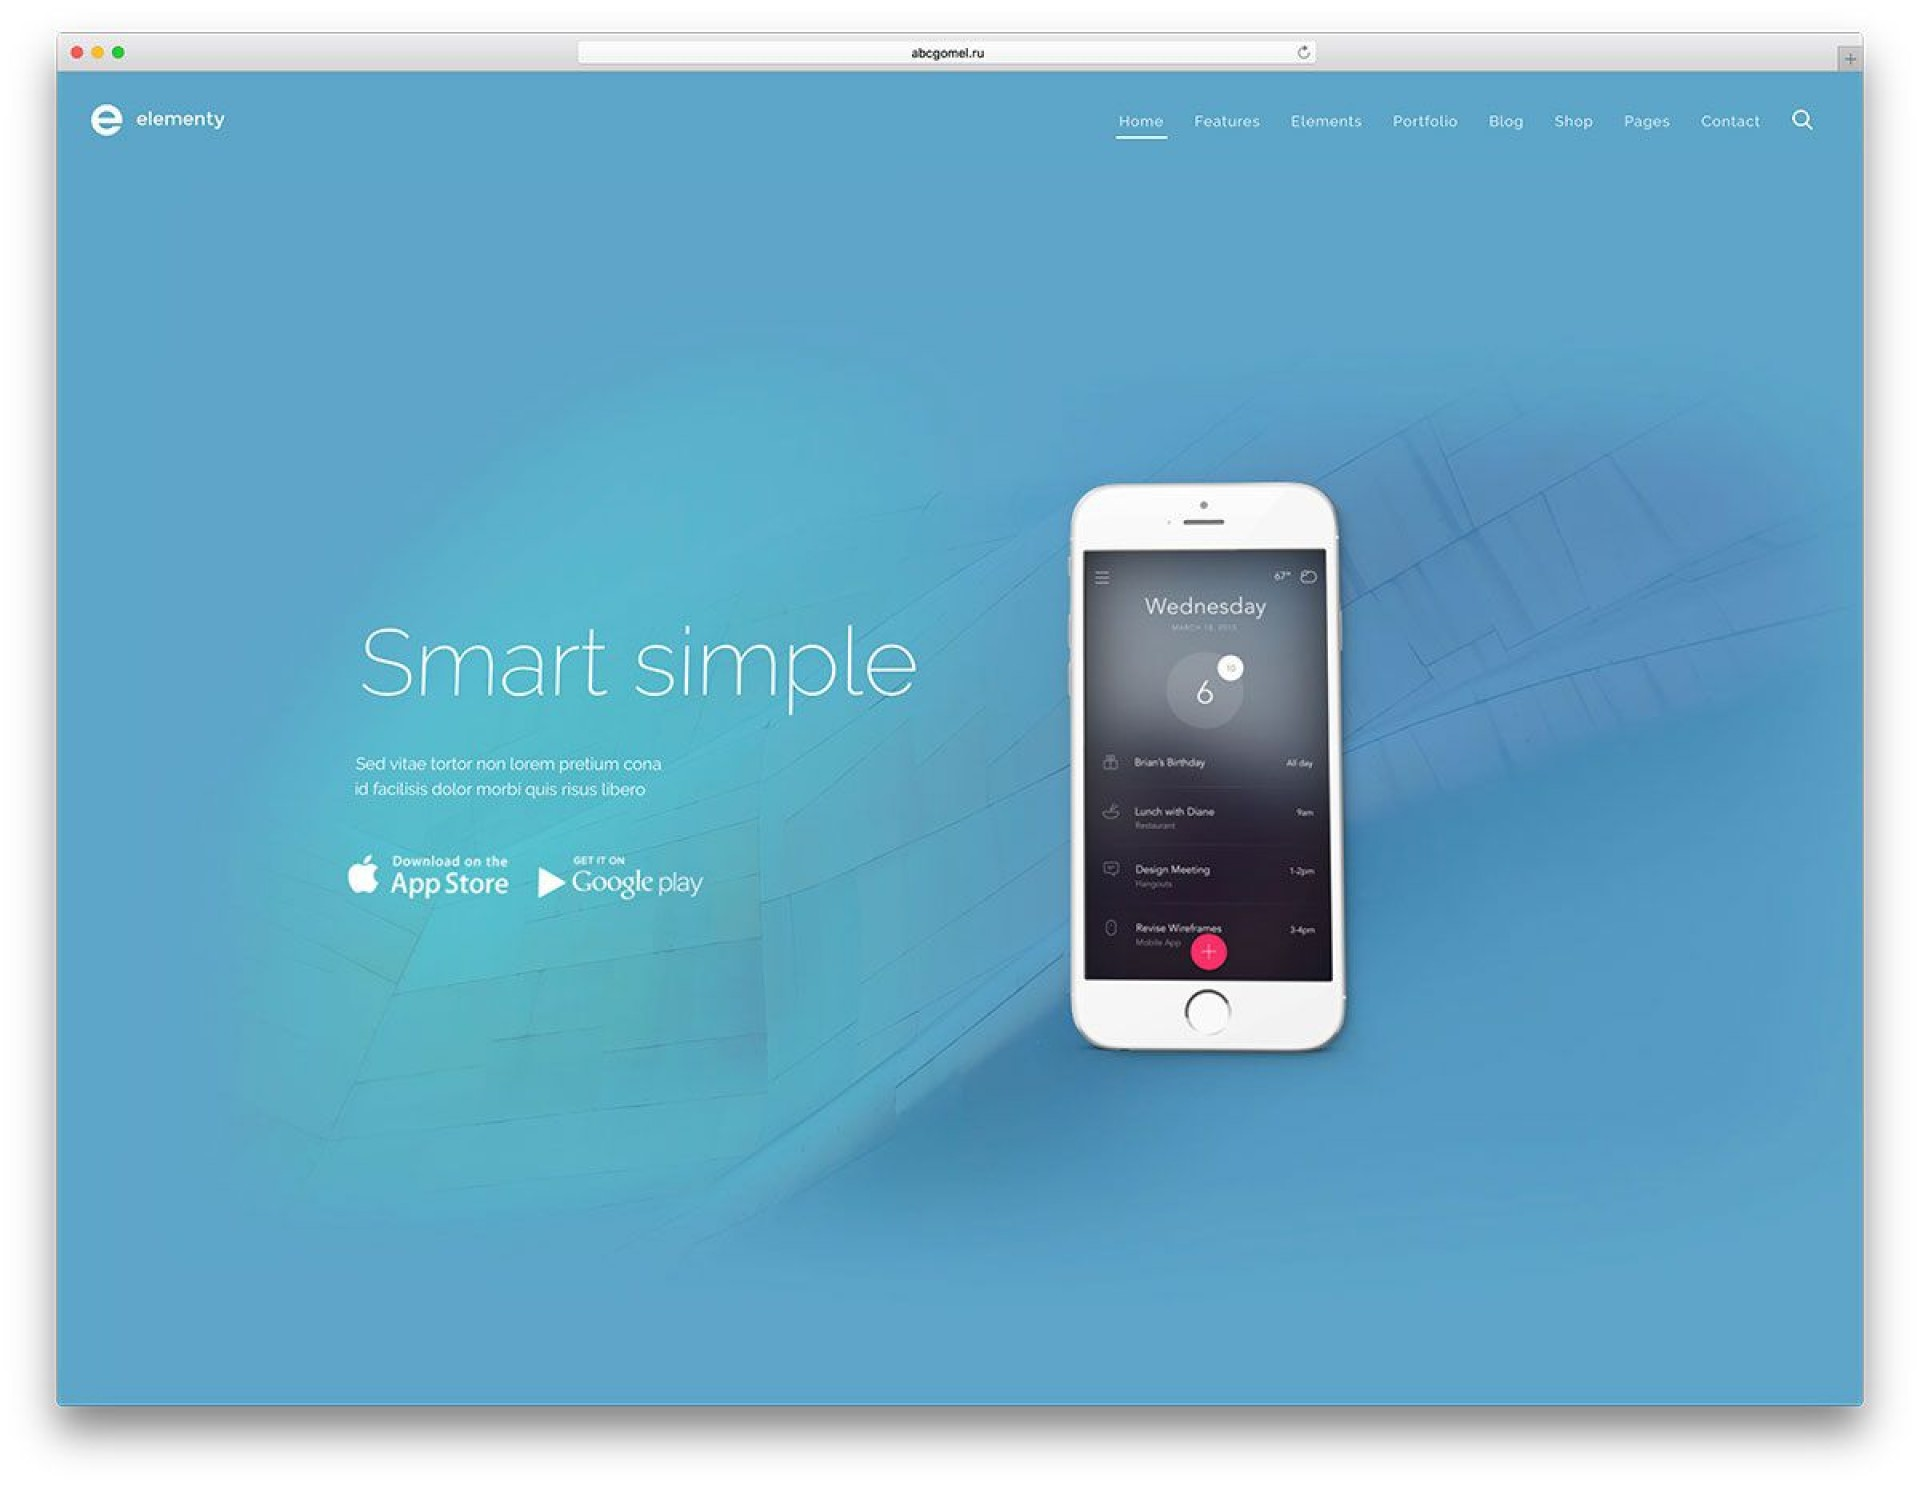 003 Awesome One Page Website Template Free Download Html5 Image  Parallax1920